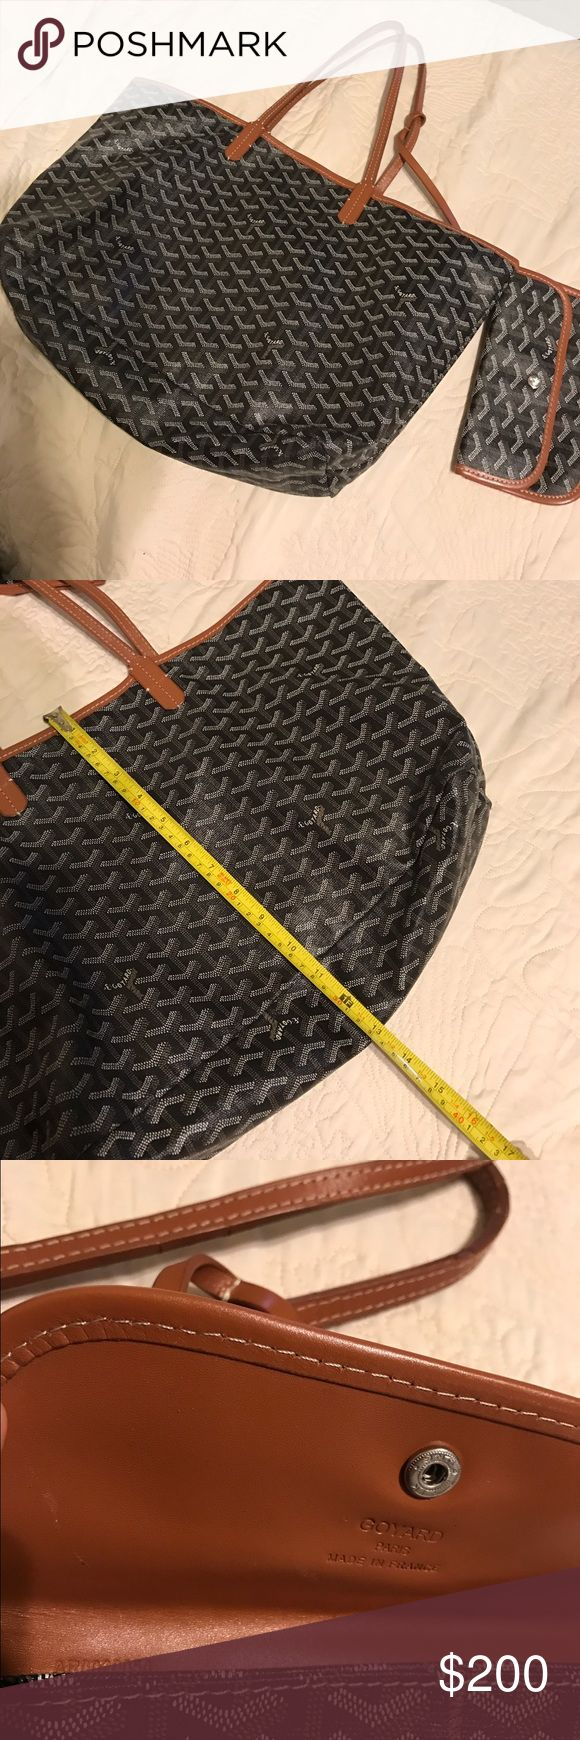 Goyard Bag and pouch Good condition, it was a gift from my ex😏 authenticity unknown because i didn't purchase it  myself Goyard Bags